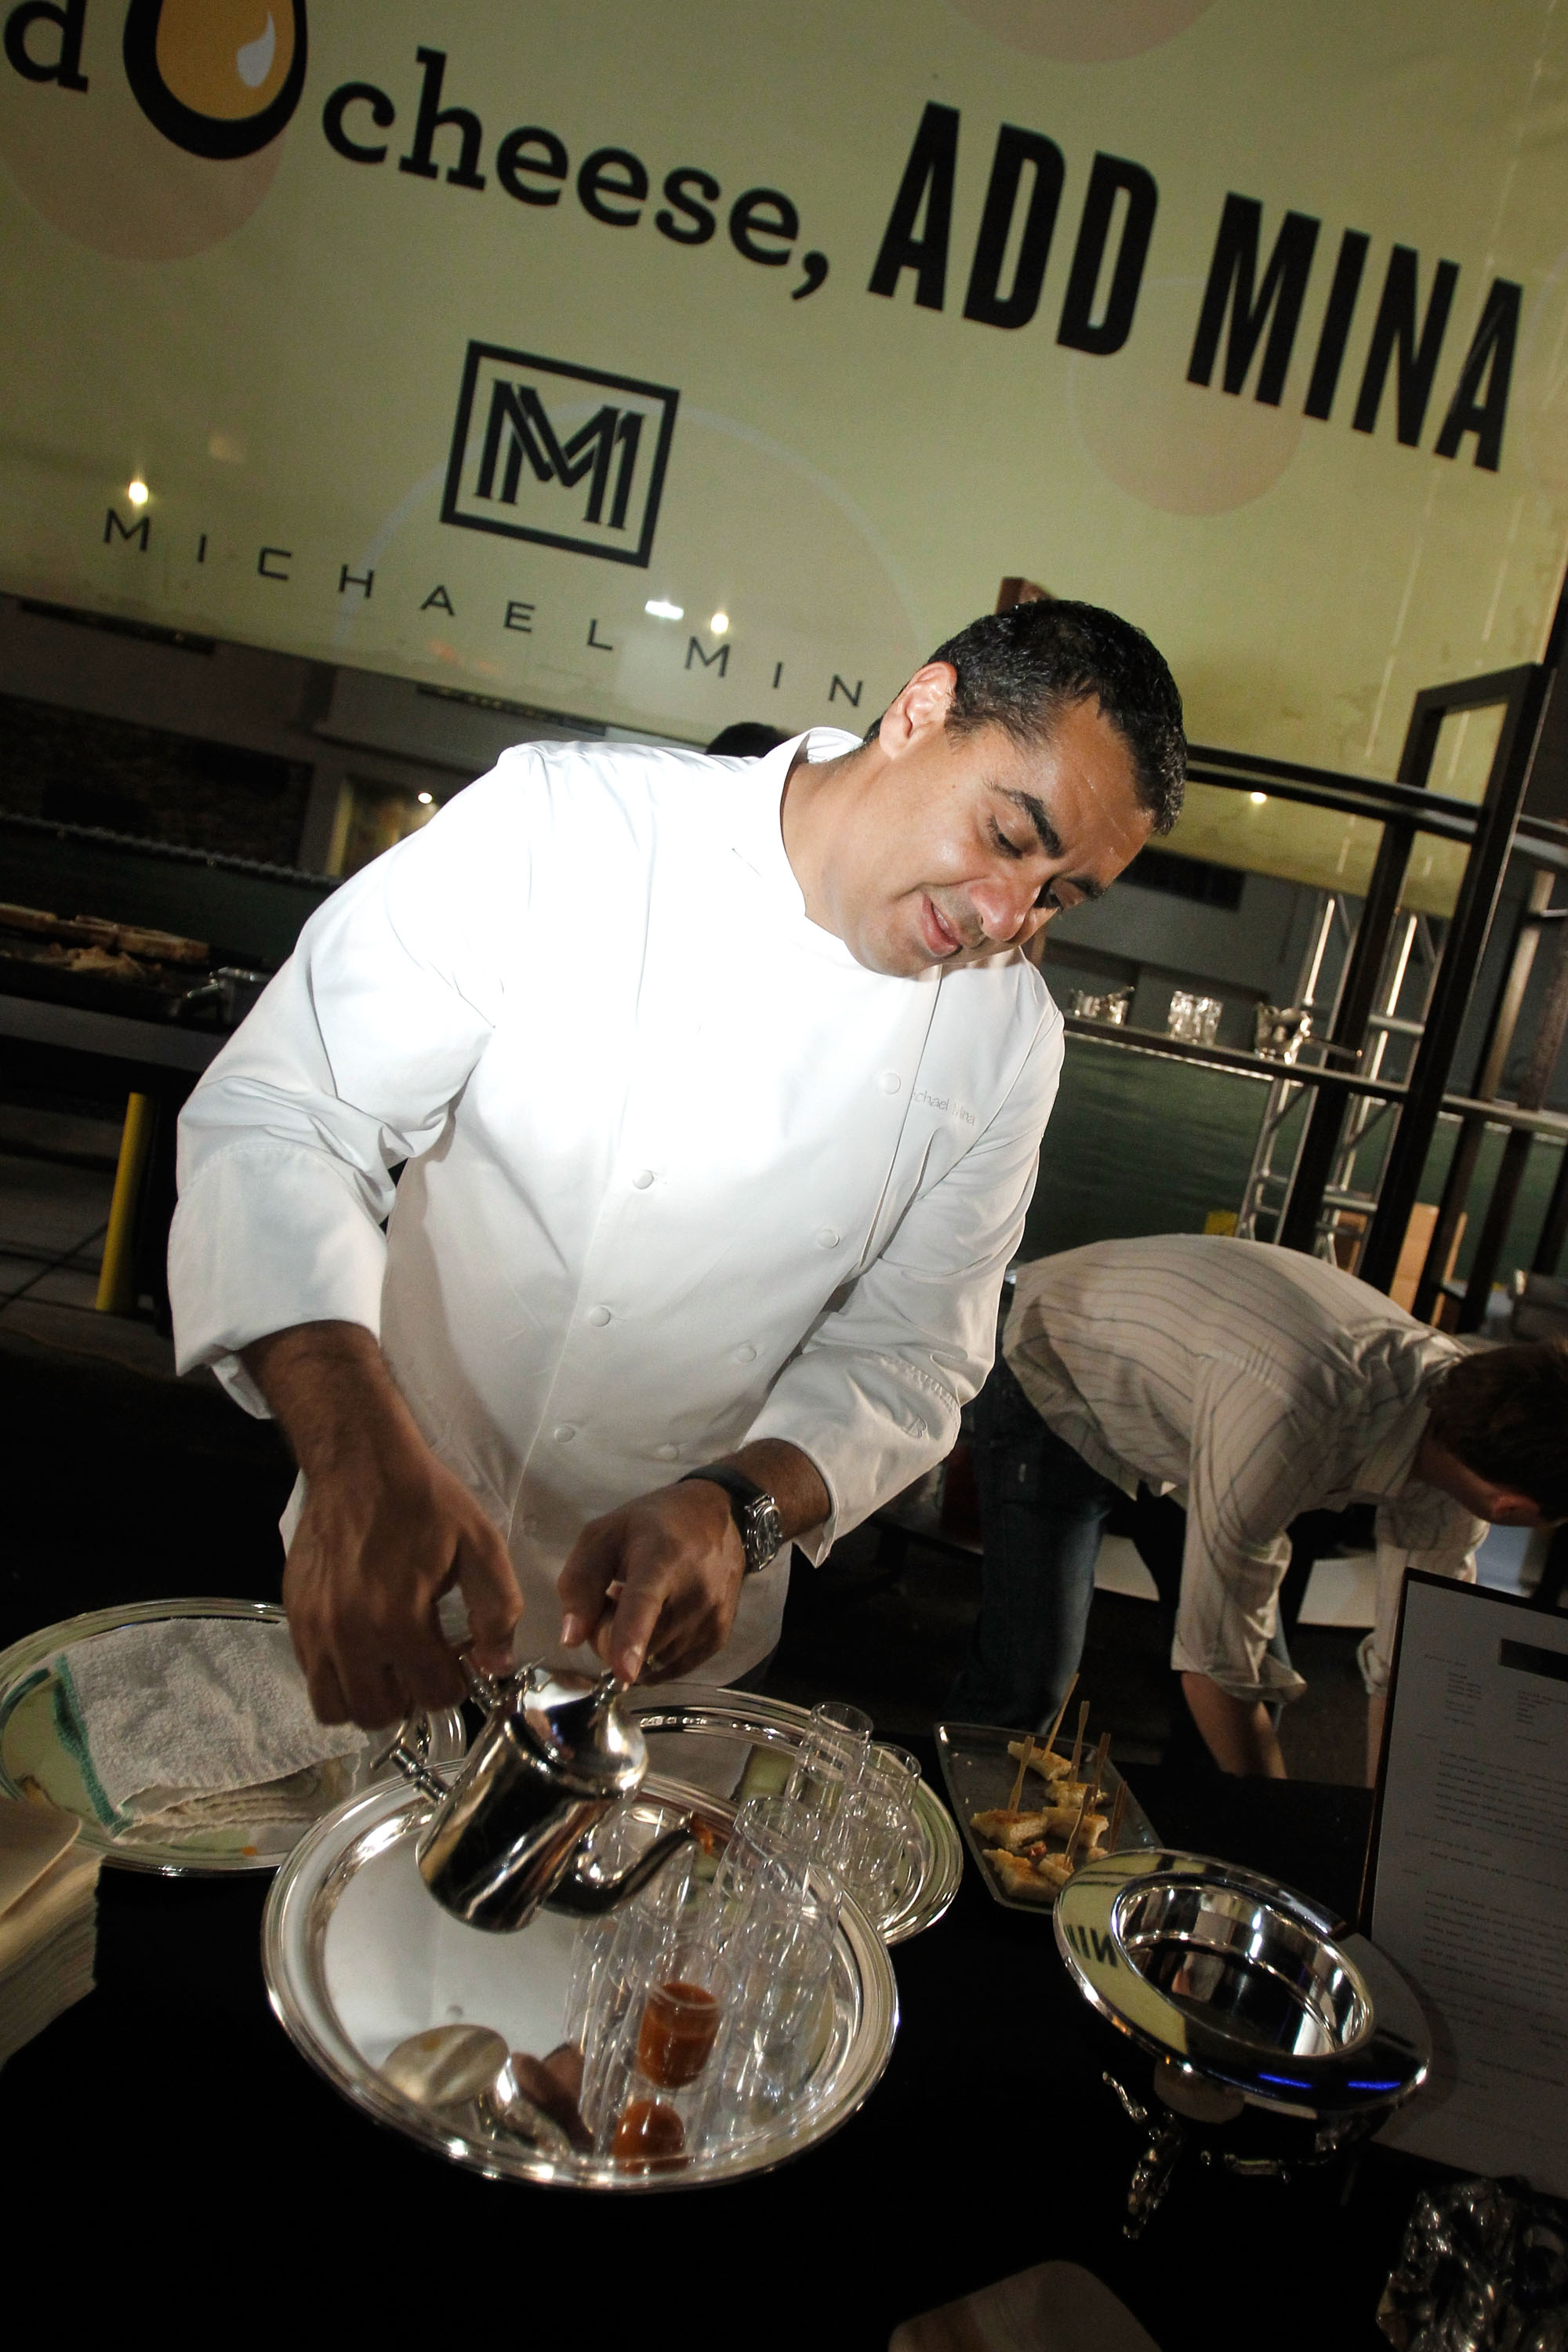 Michael Mina serving guests at Follow That Food Truck at Bellagio for Vegas Uncork&#39;d (photo credit: Isaac Brekken)